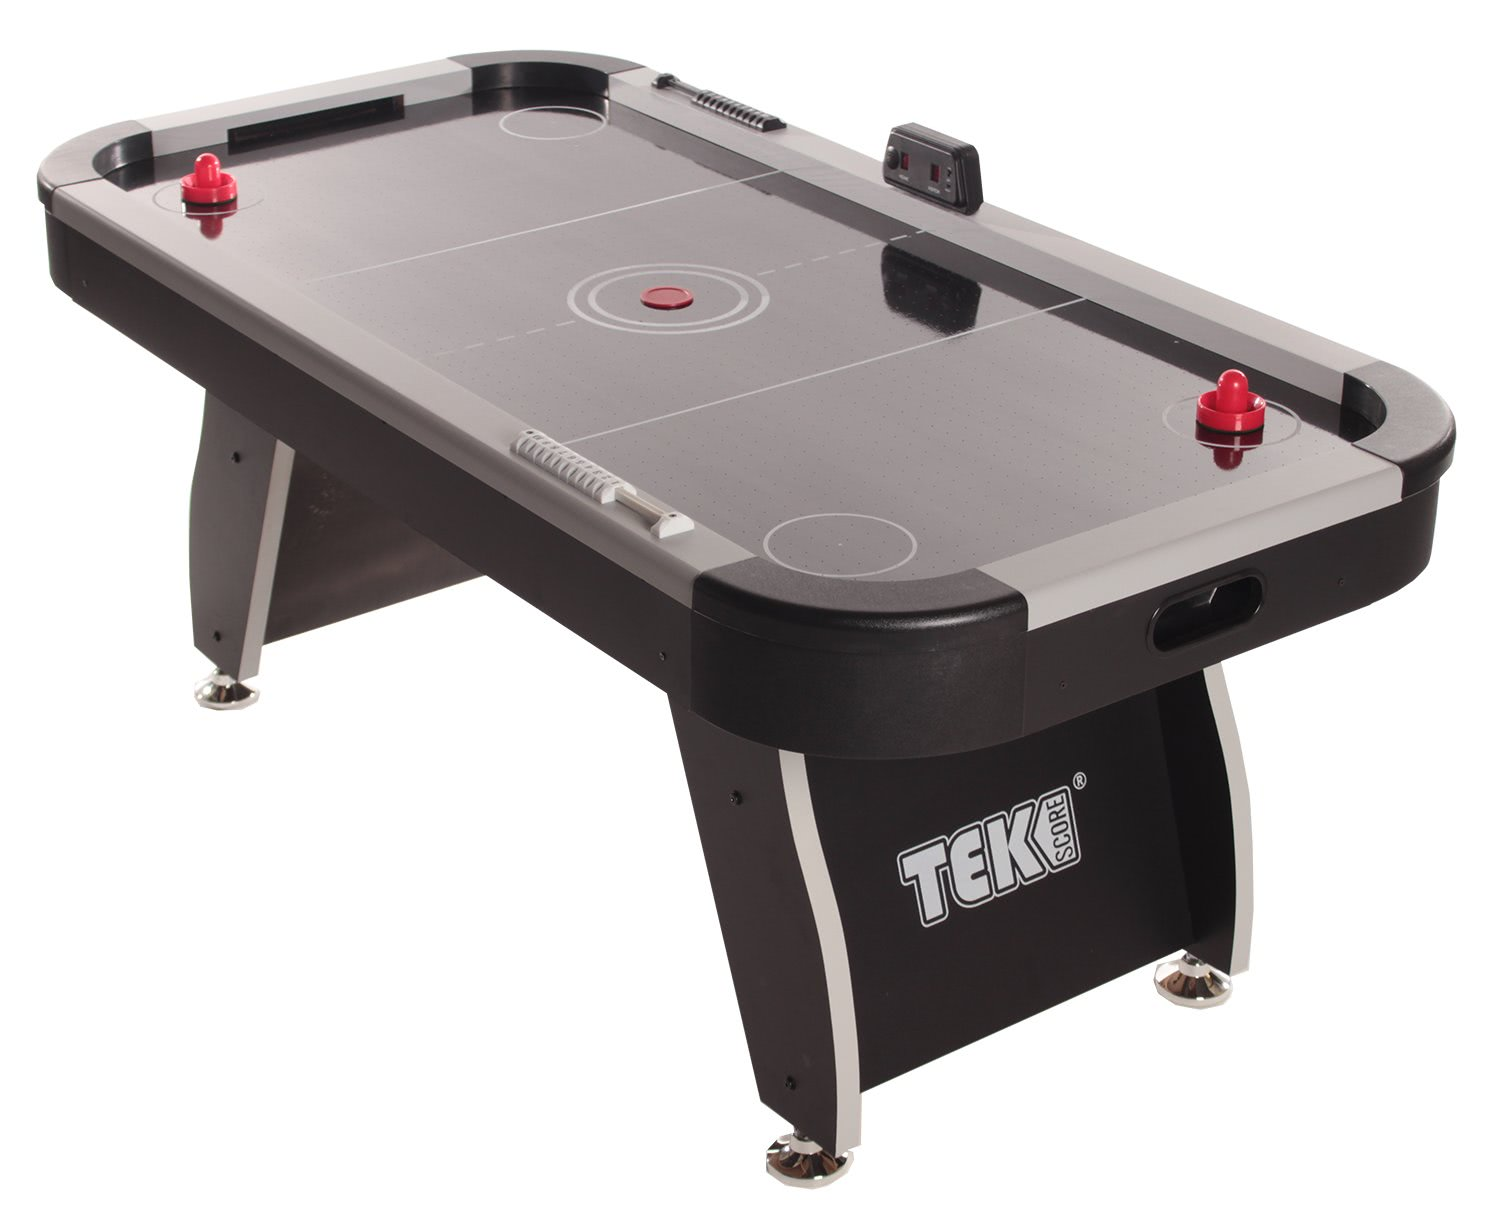 Tekscore Jet 6ft Air Hockey Table